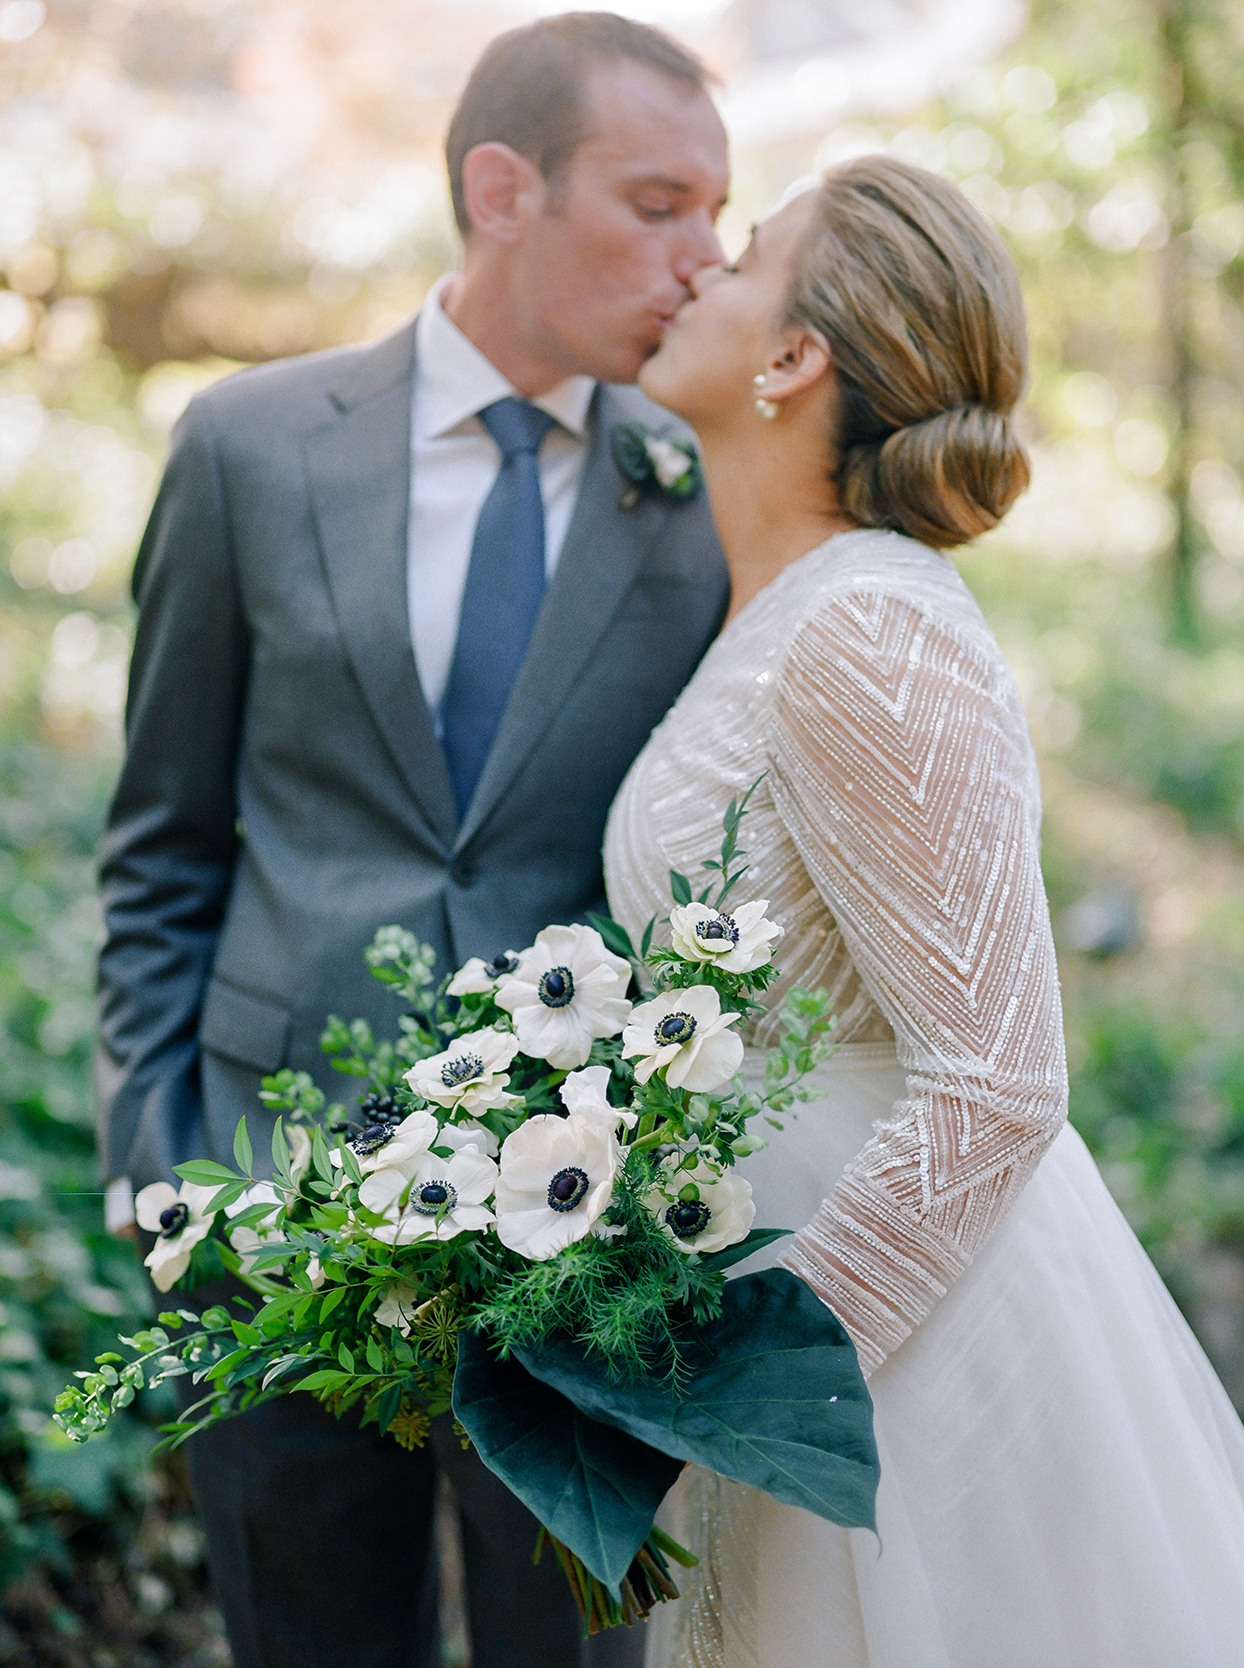 bride and groom kissing while bride holds black and white floral wedding bouquet